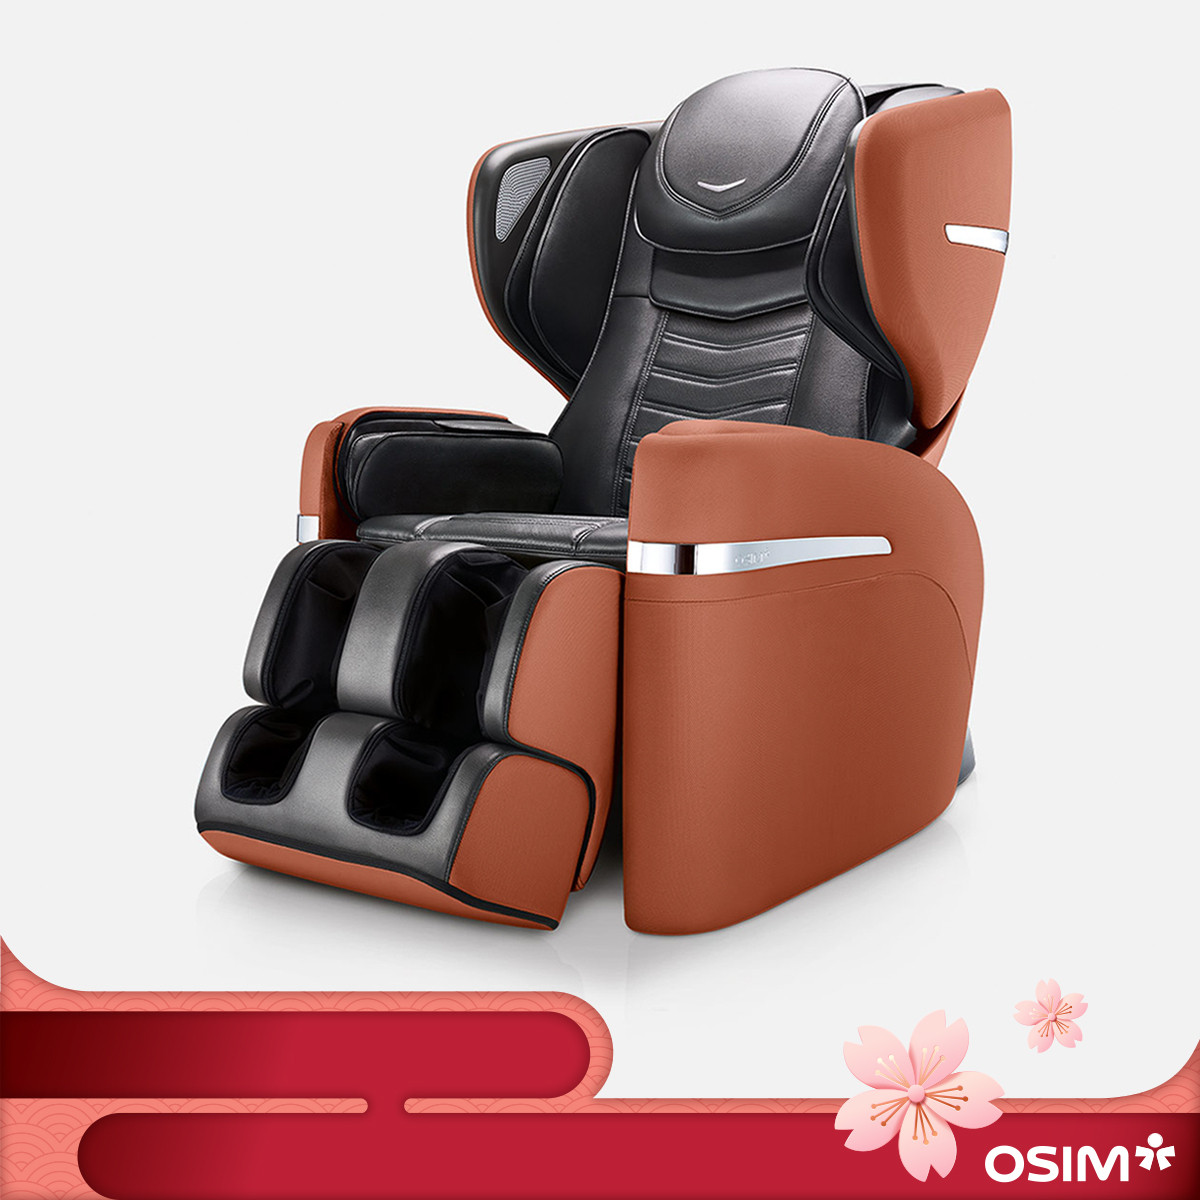 uDivine V Massage Chair